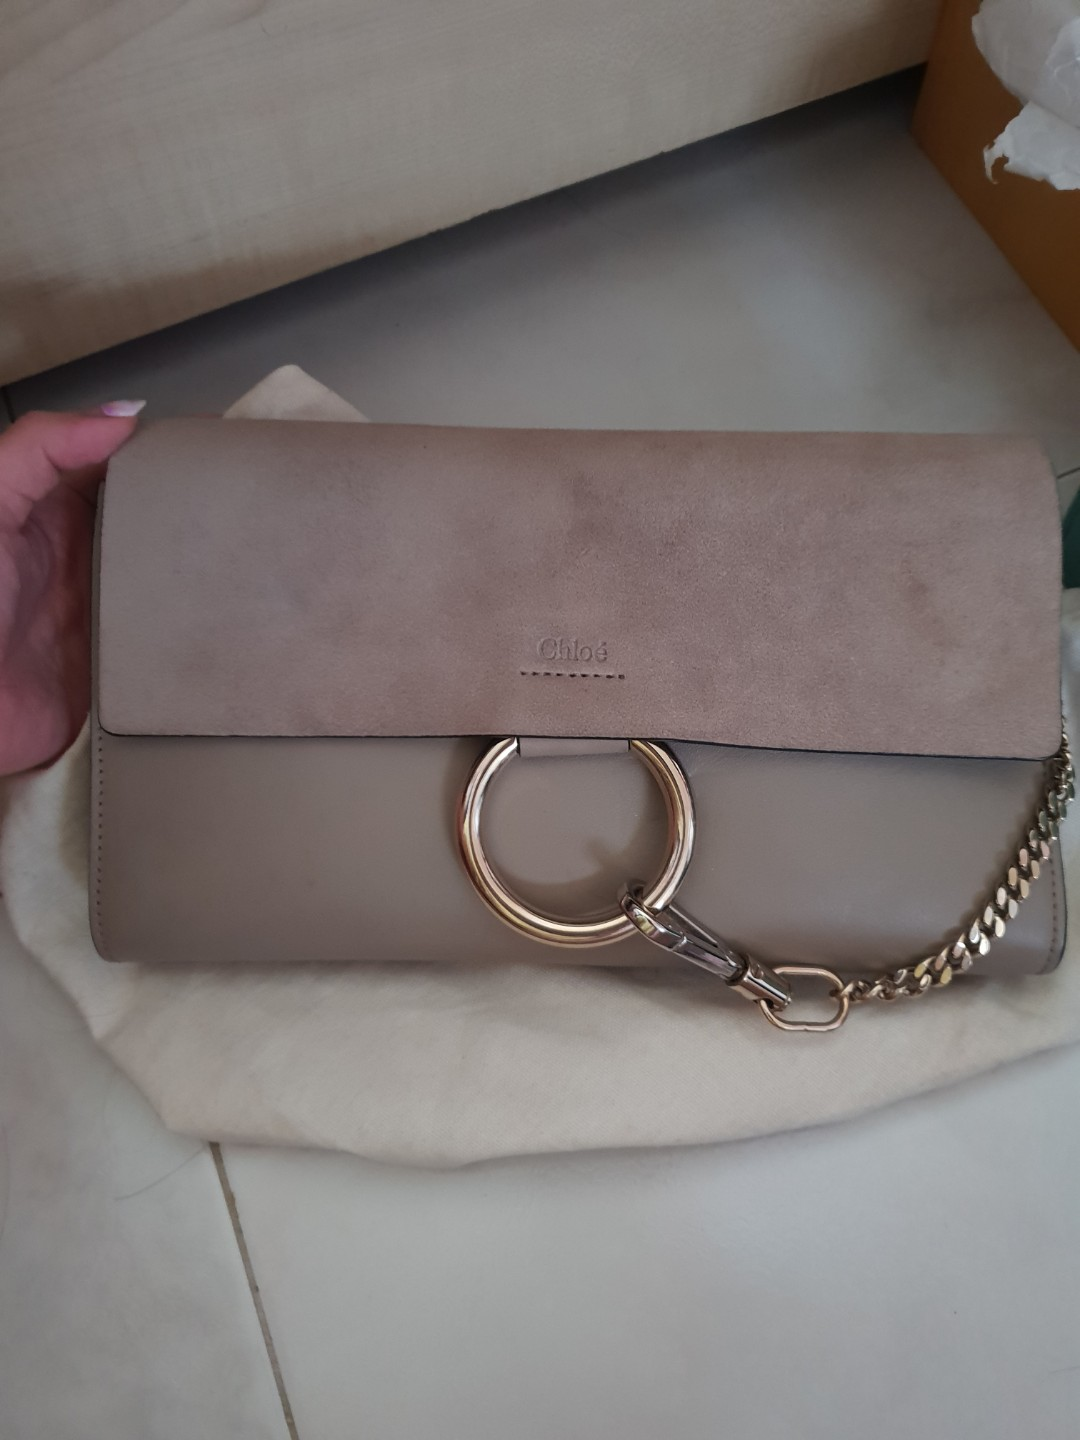 2da73b715af3e Chloe faye clutch in motty grey